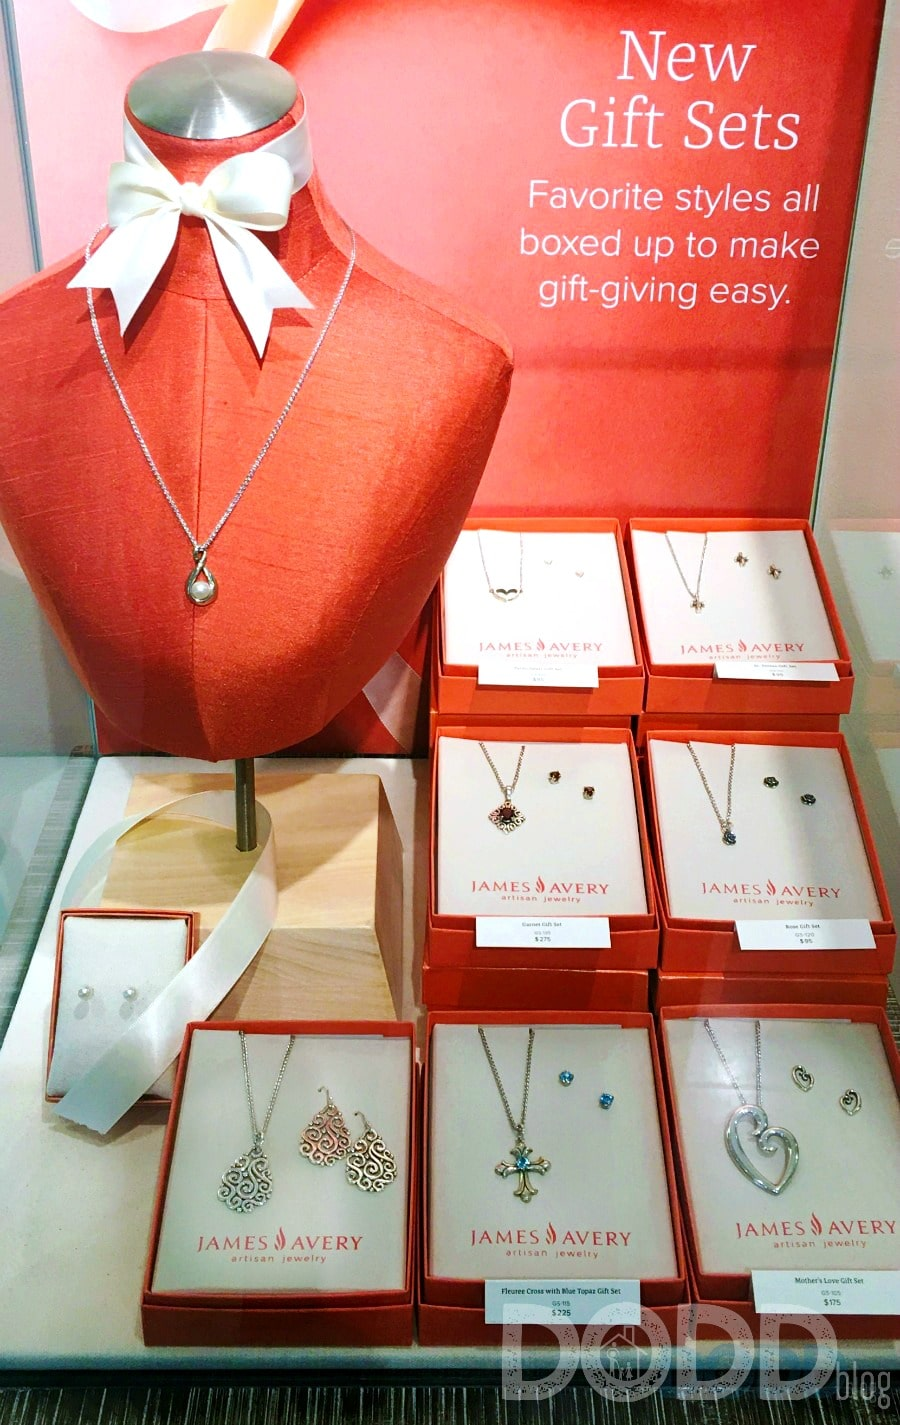 James-Avery-Gift-Sets Valentines Day